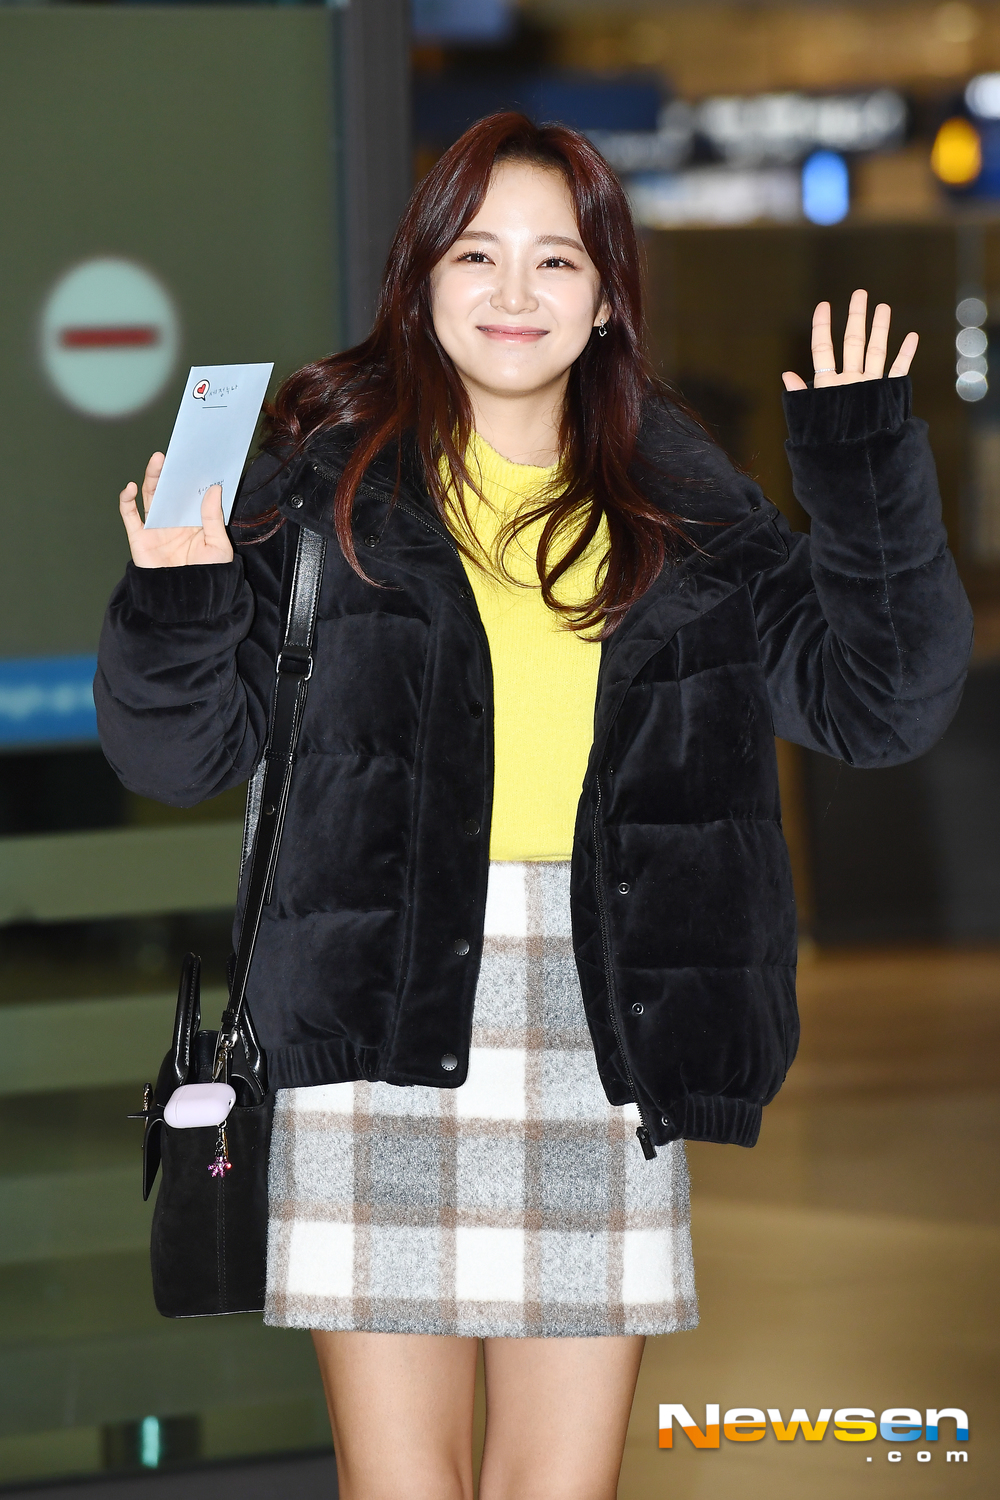 <p>Gugudan(gugudan) member washing this 7 Days am Incheon Jung-operation in Incheon International Airport via Taiwan set a distinctive program'beginner or women red-white Arts Awards'recording and entry.</p><p>Gugudan(gugudan) member washing this airport fashion and entry.</p>